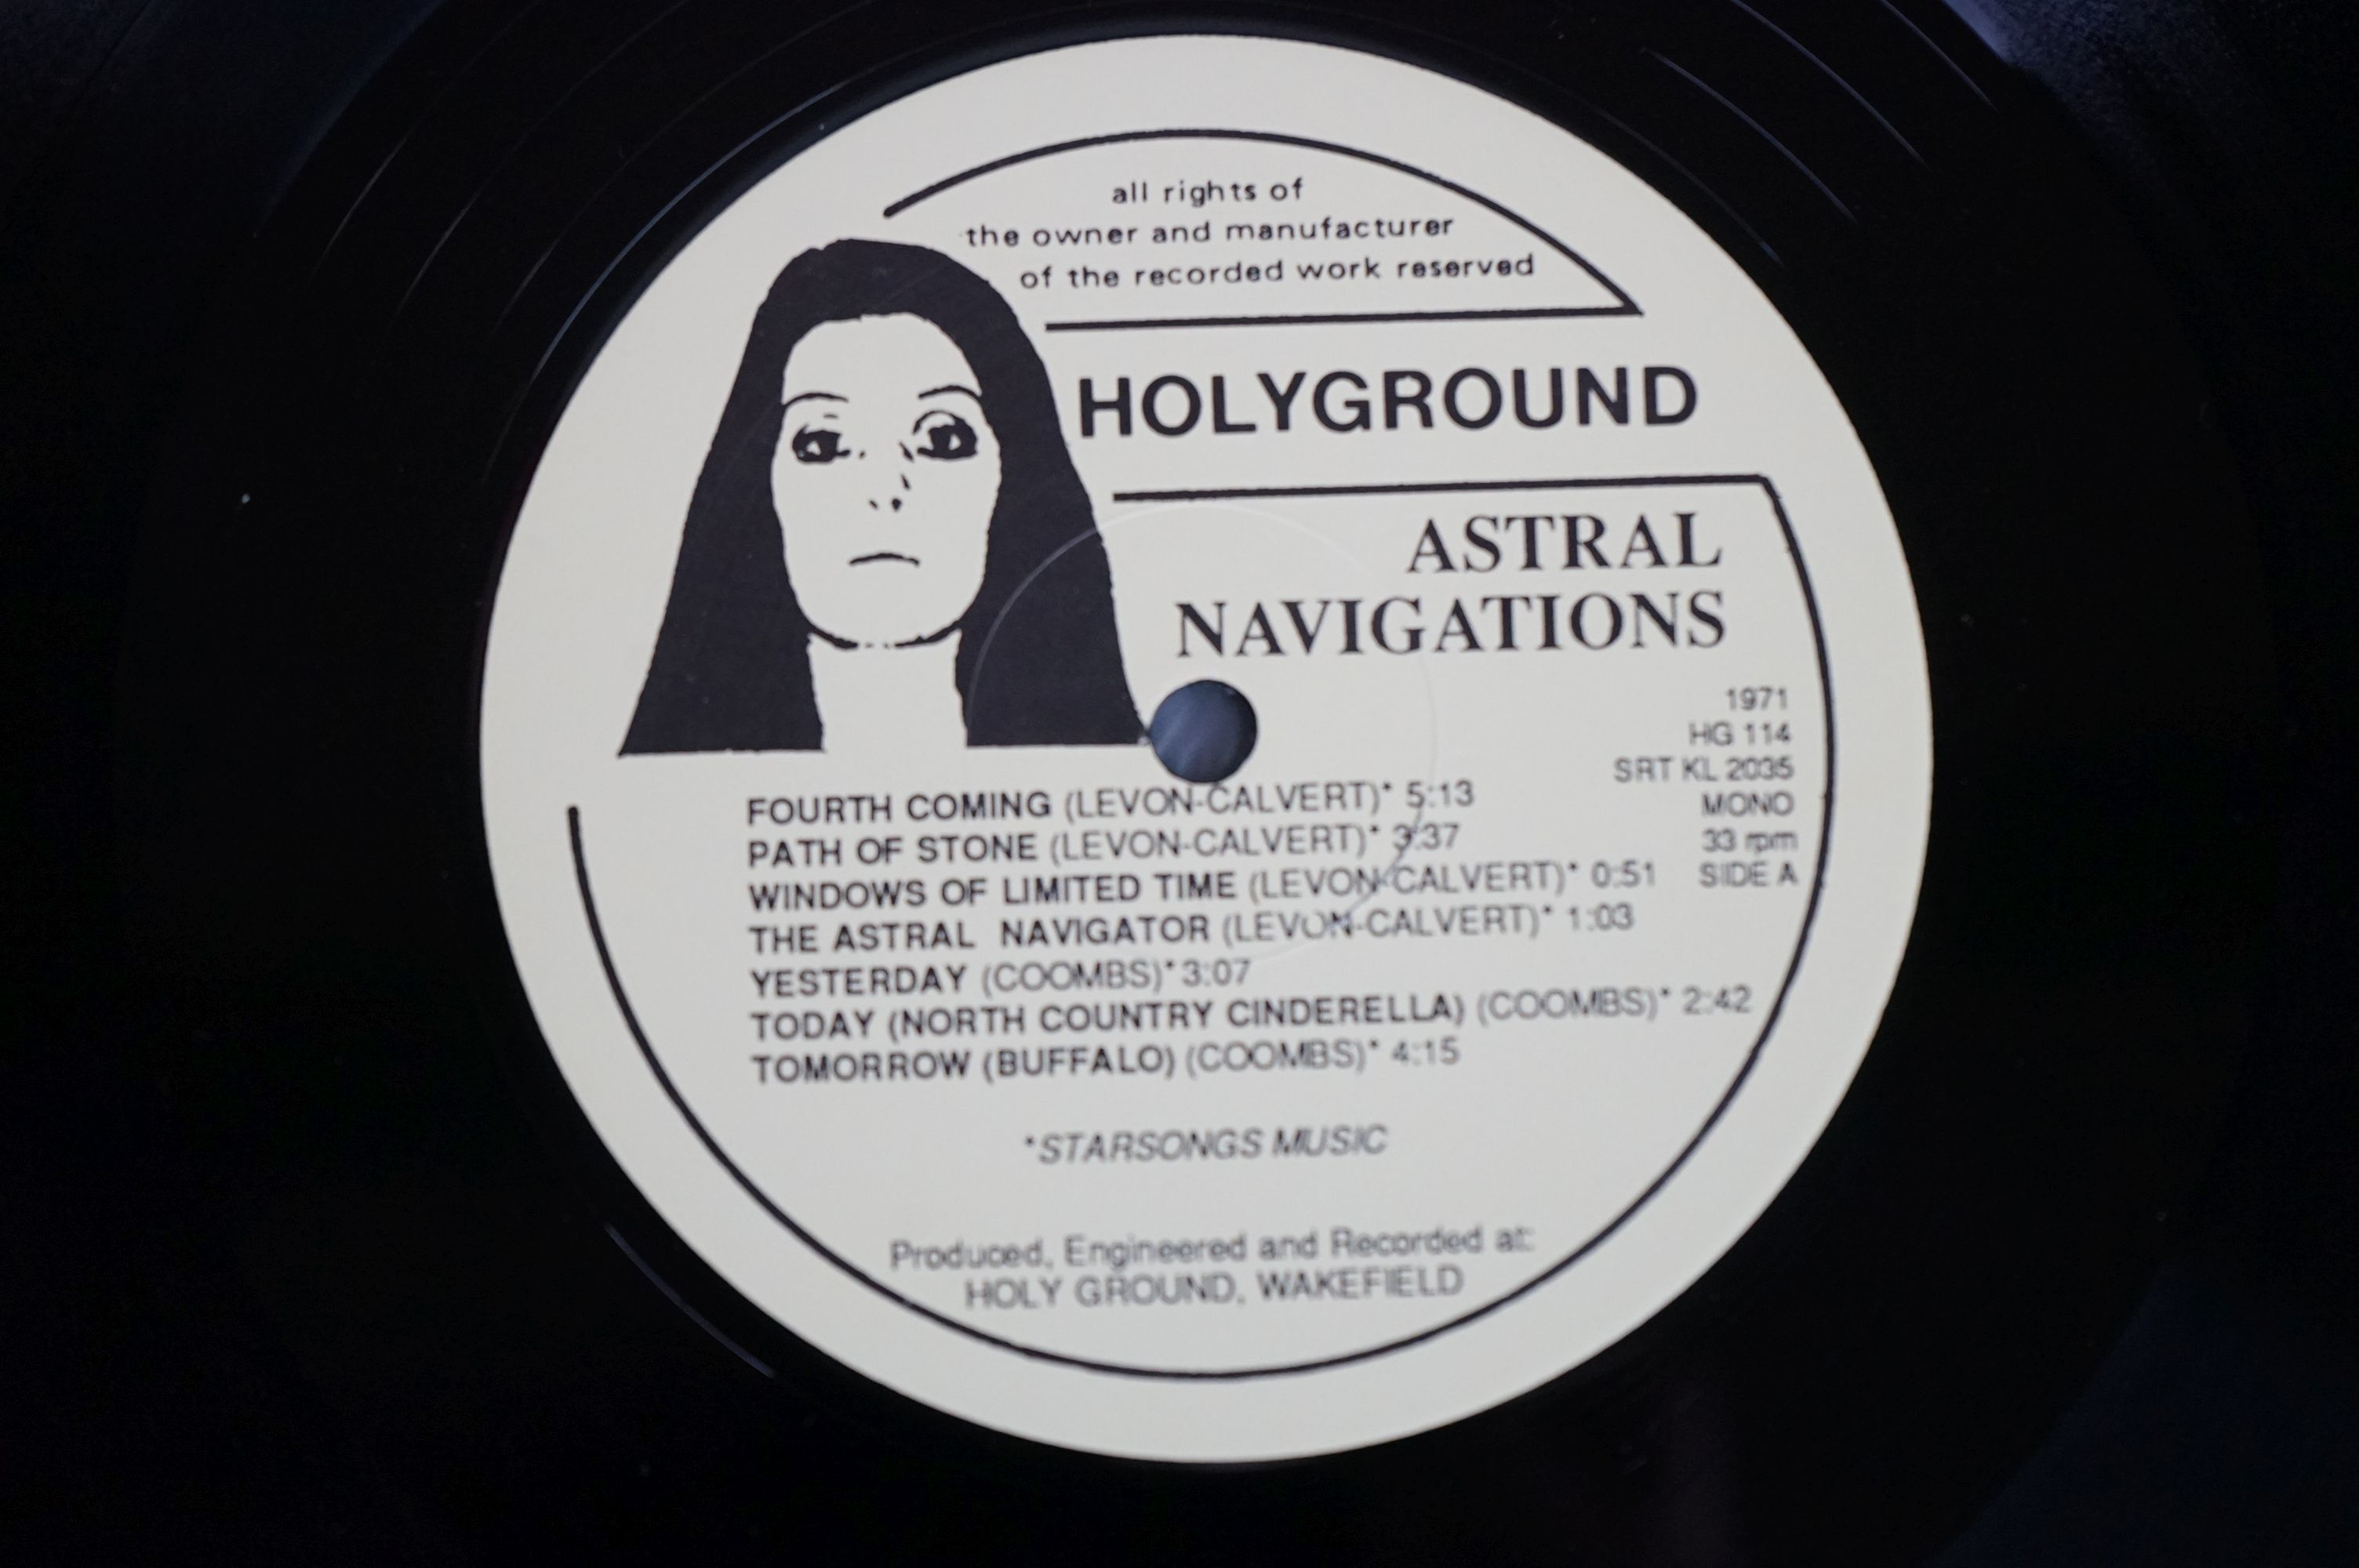 Vinyl - Lightyears Away / Thundermother ?? Astral Navigations (HG 114) numbered Ltd Edition - Image 4 of 12